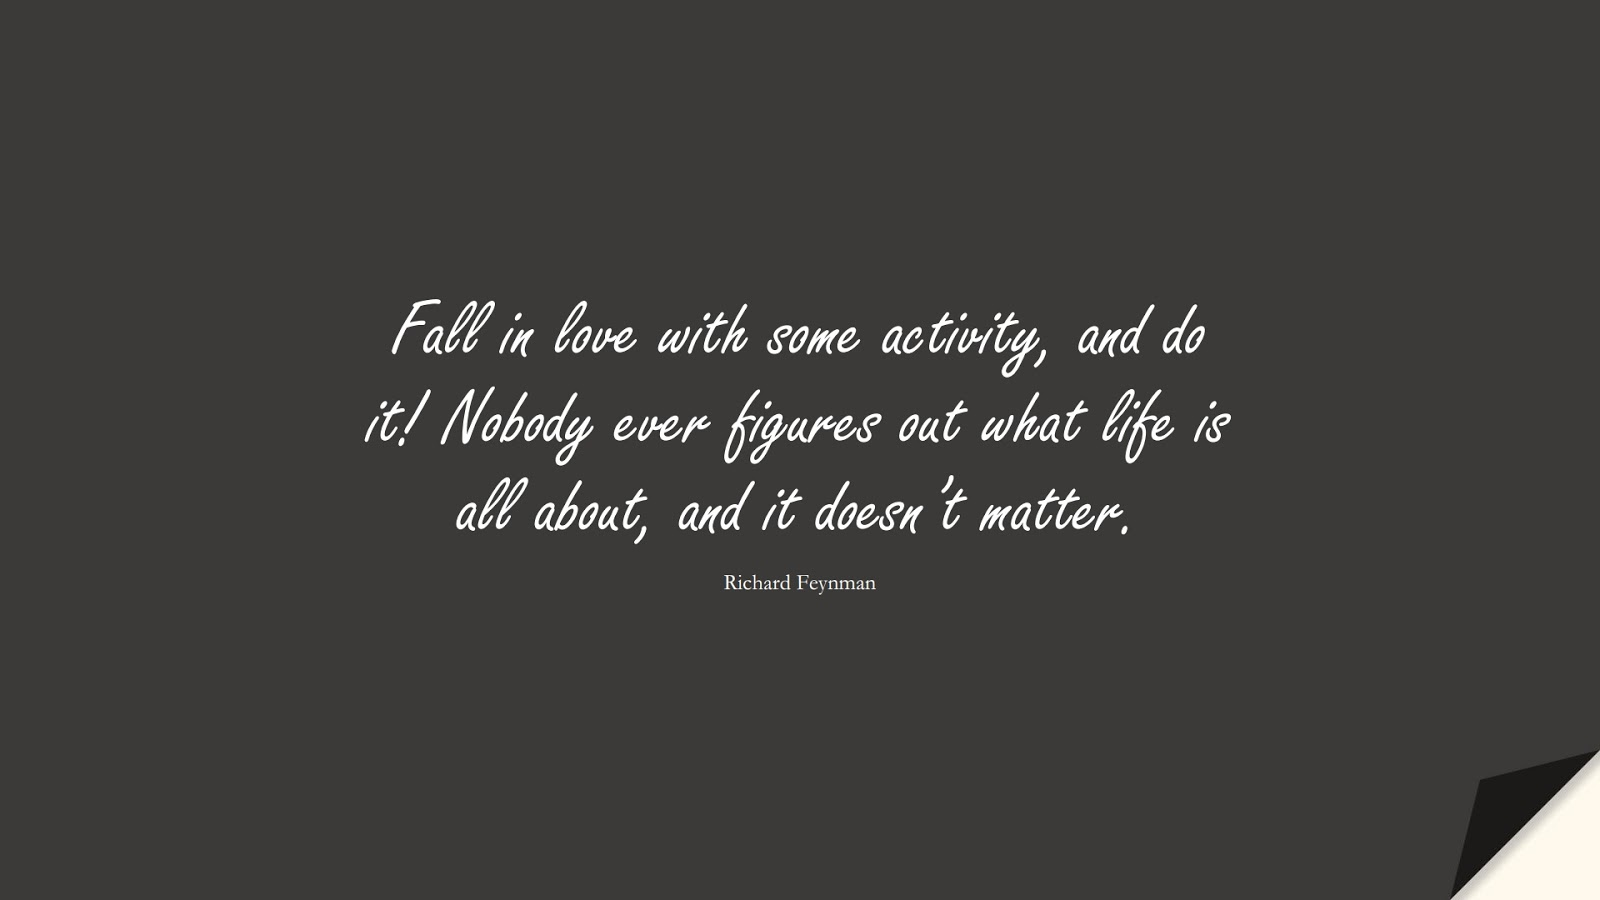 Fall in love with some activity, and do it! Nobody ever figures out what life is all about, and it doesn't matter. (Richard Feynman);  #EncouragingQuotes